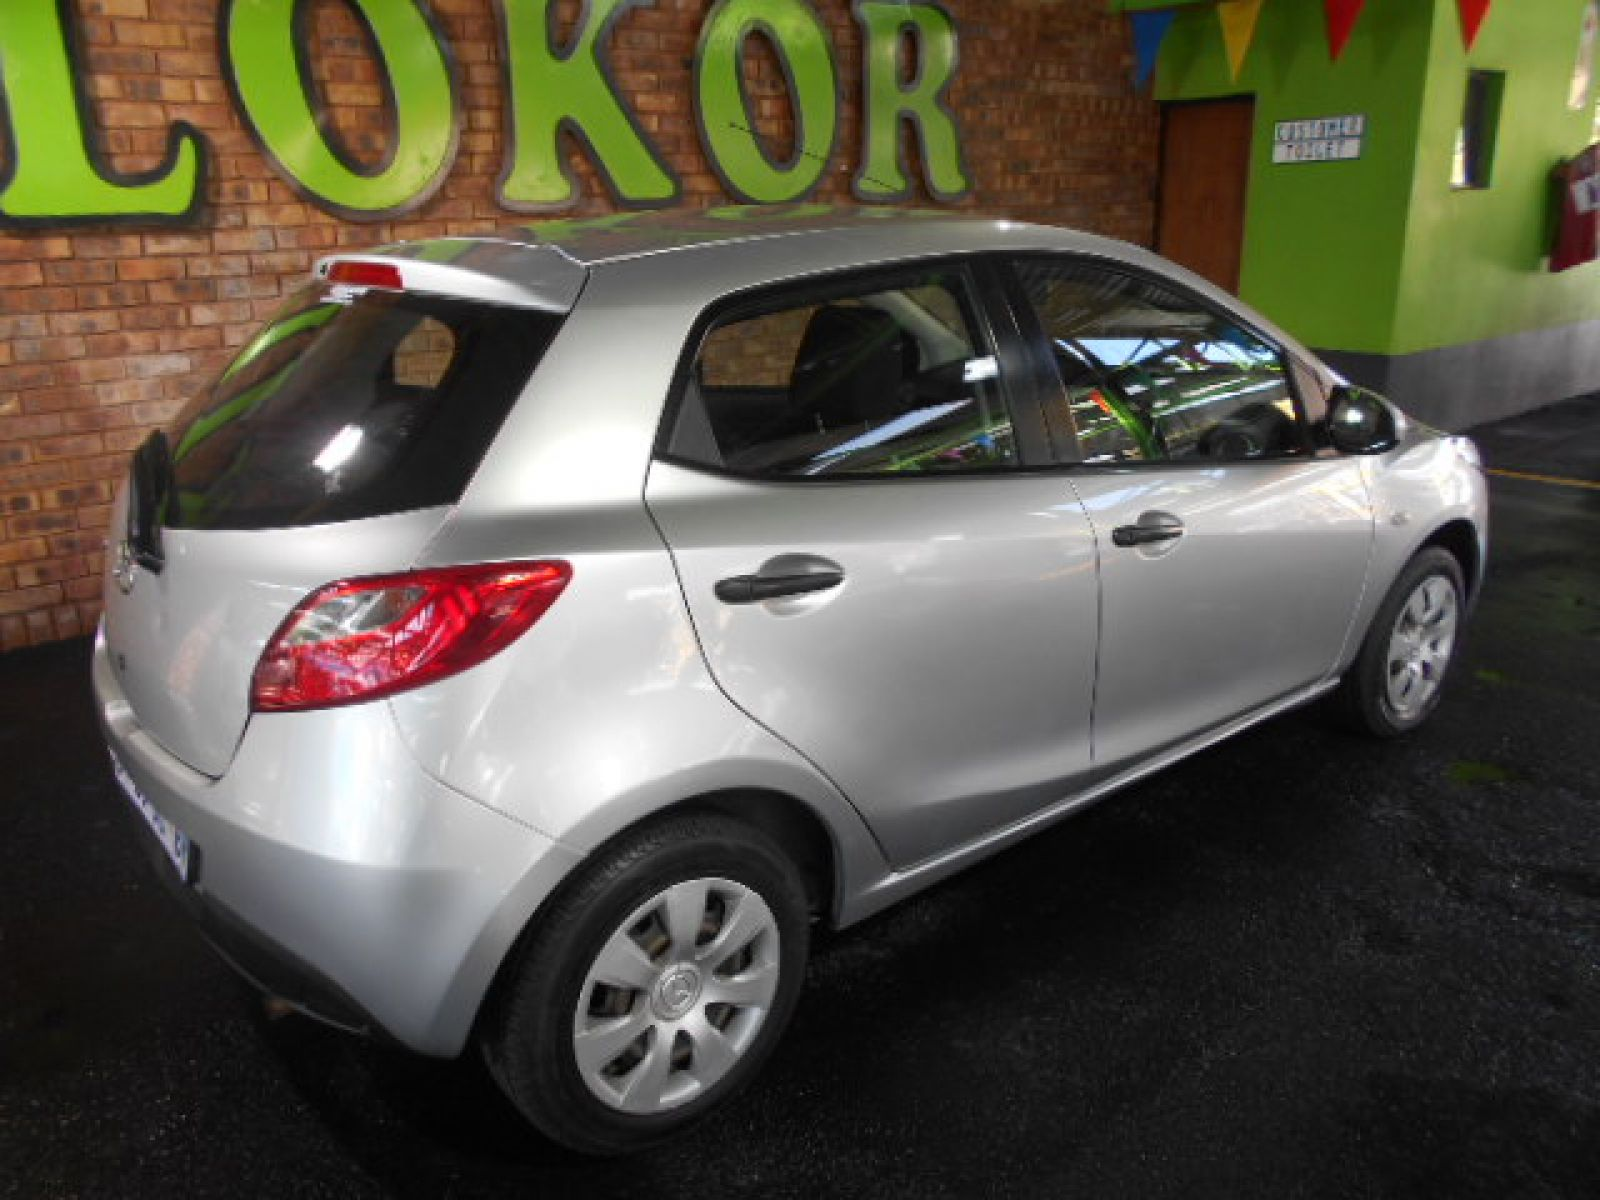 2012 Mazda 2 R 119 990 For Sale Kilokor Motors